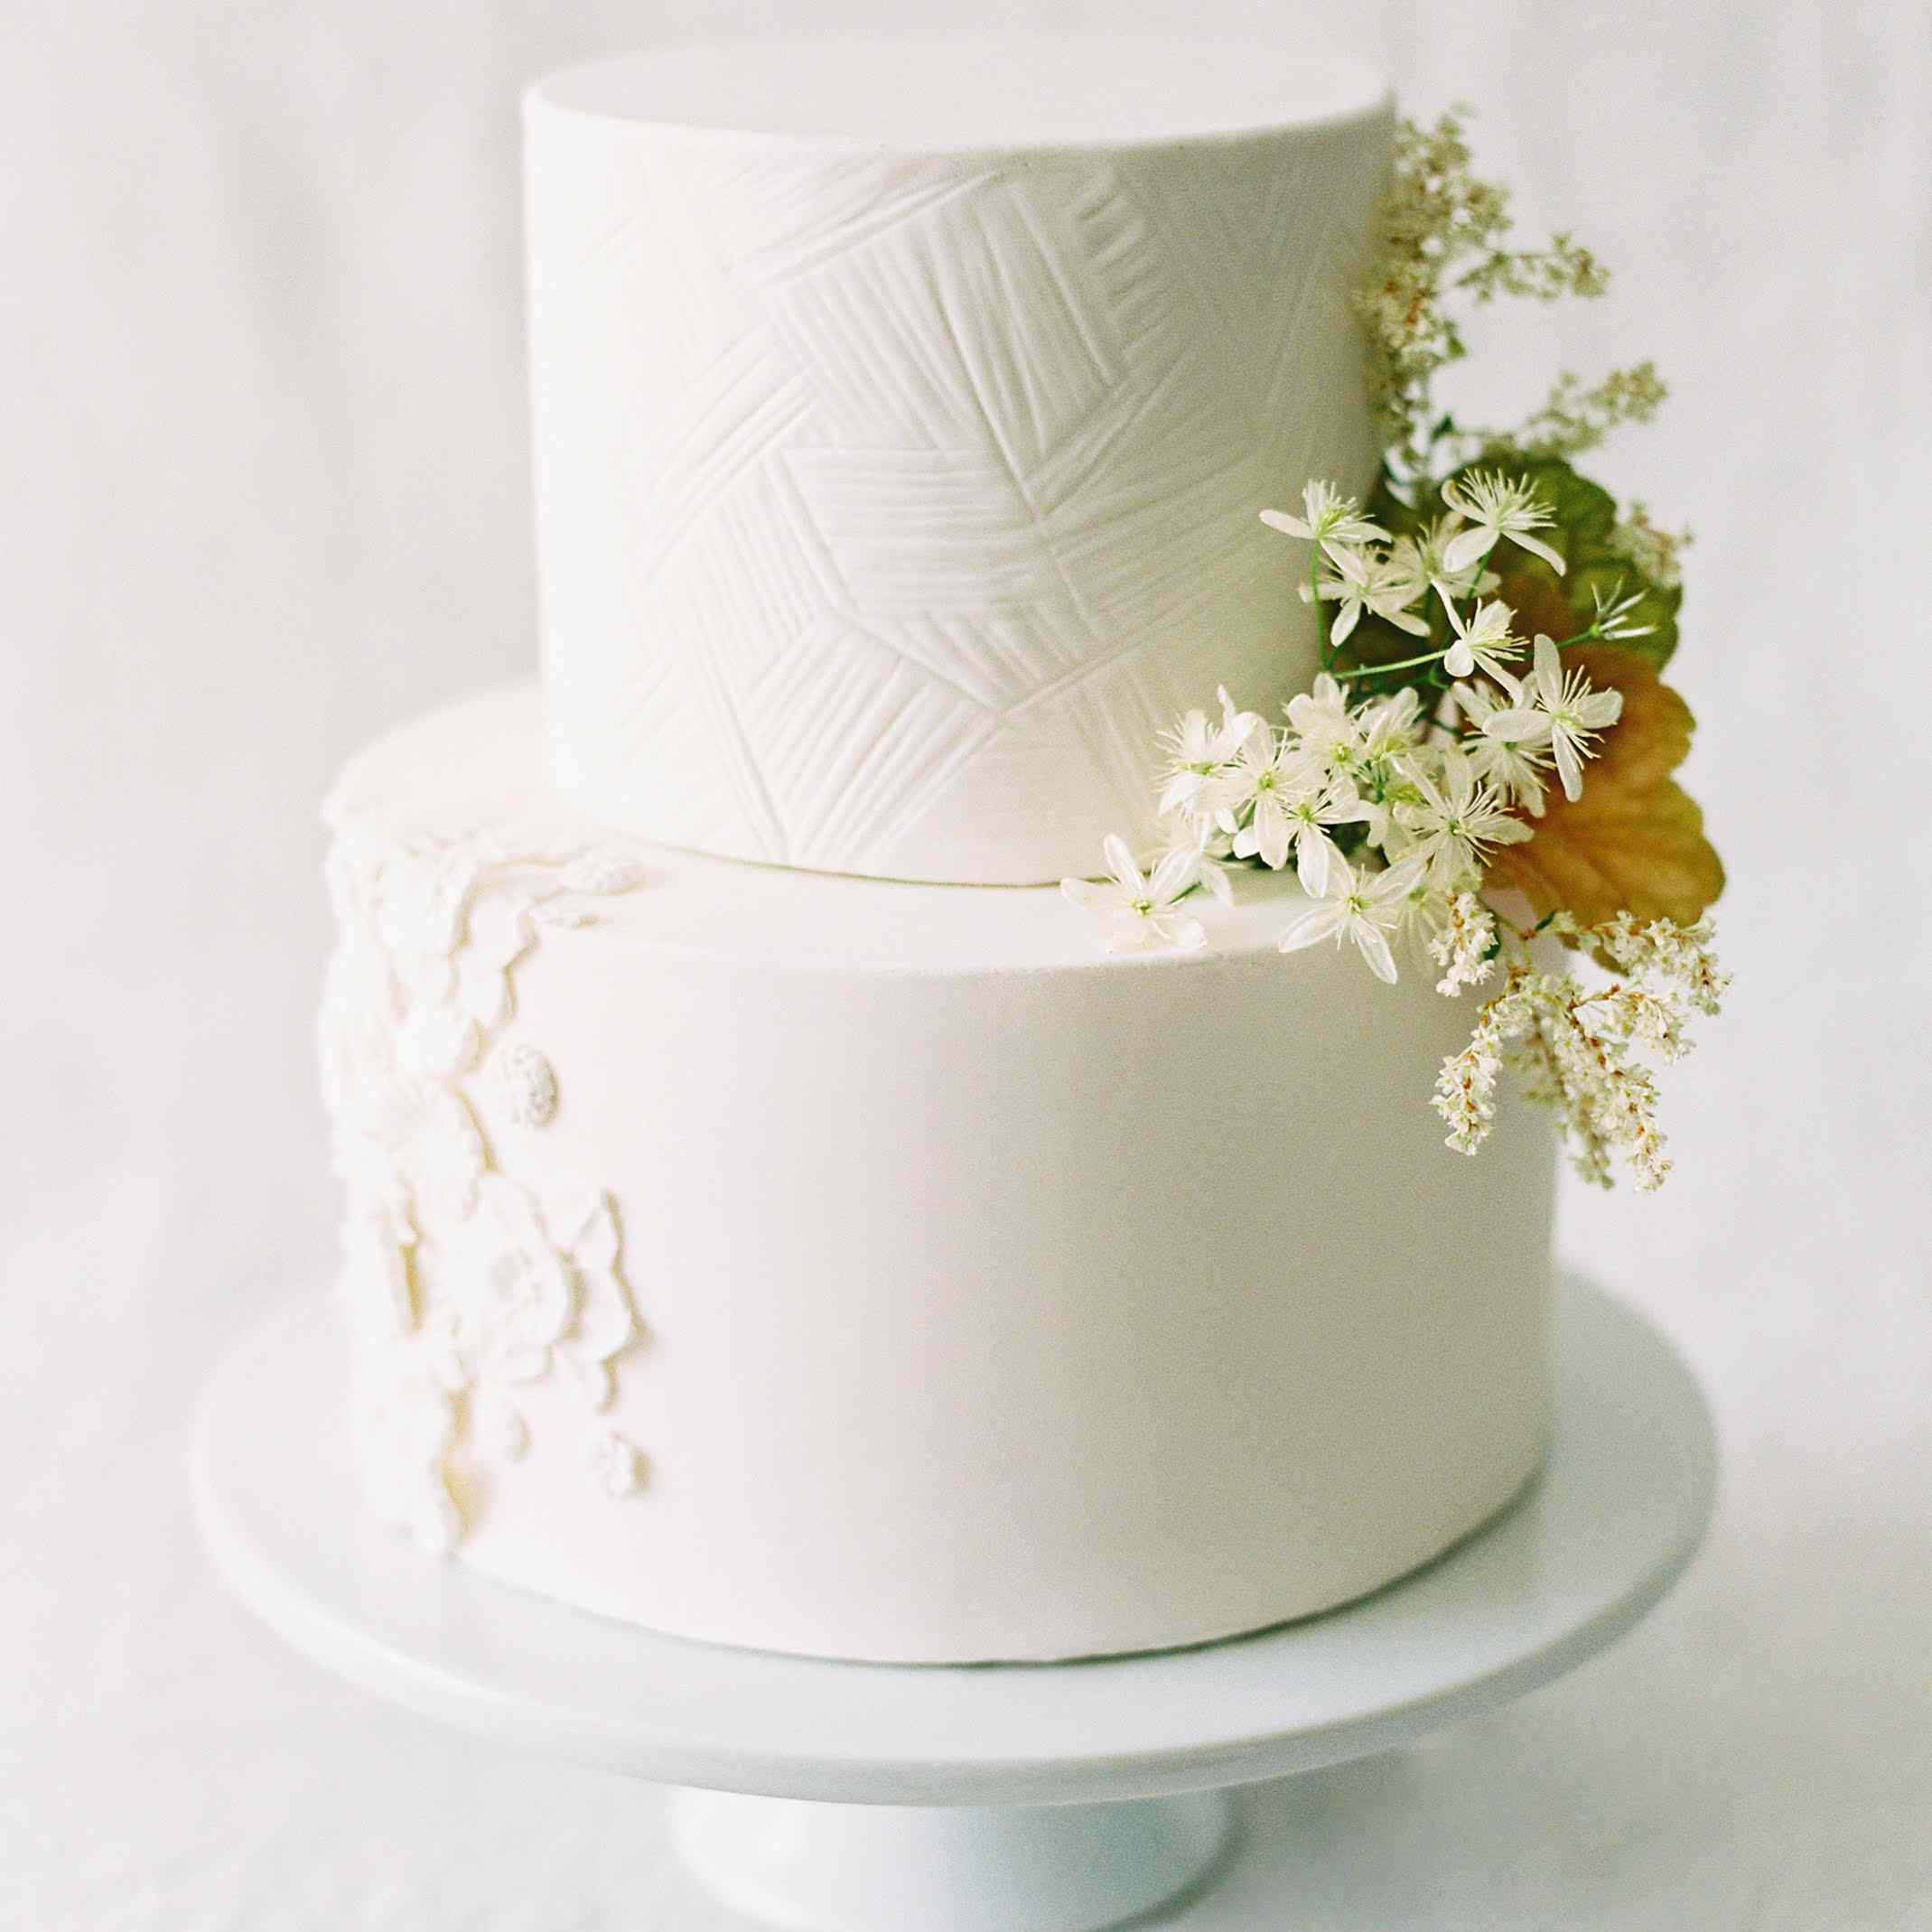 Tiered white wedding cake with floral and textural accents